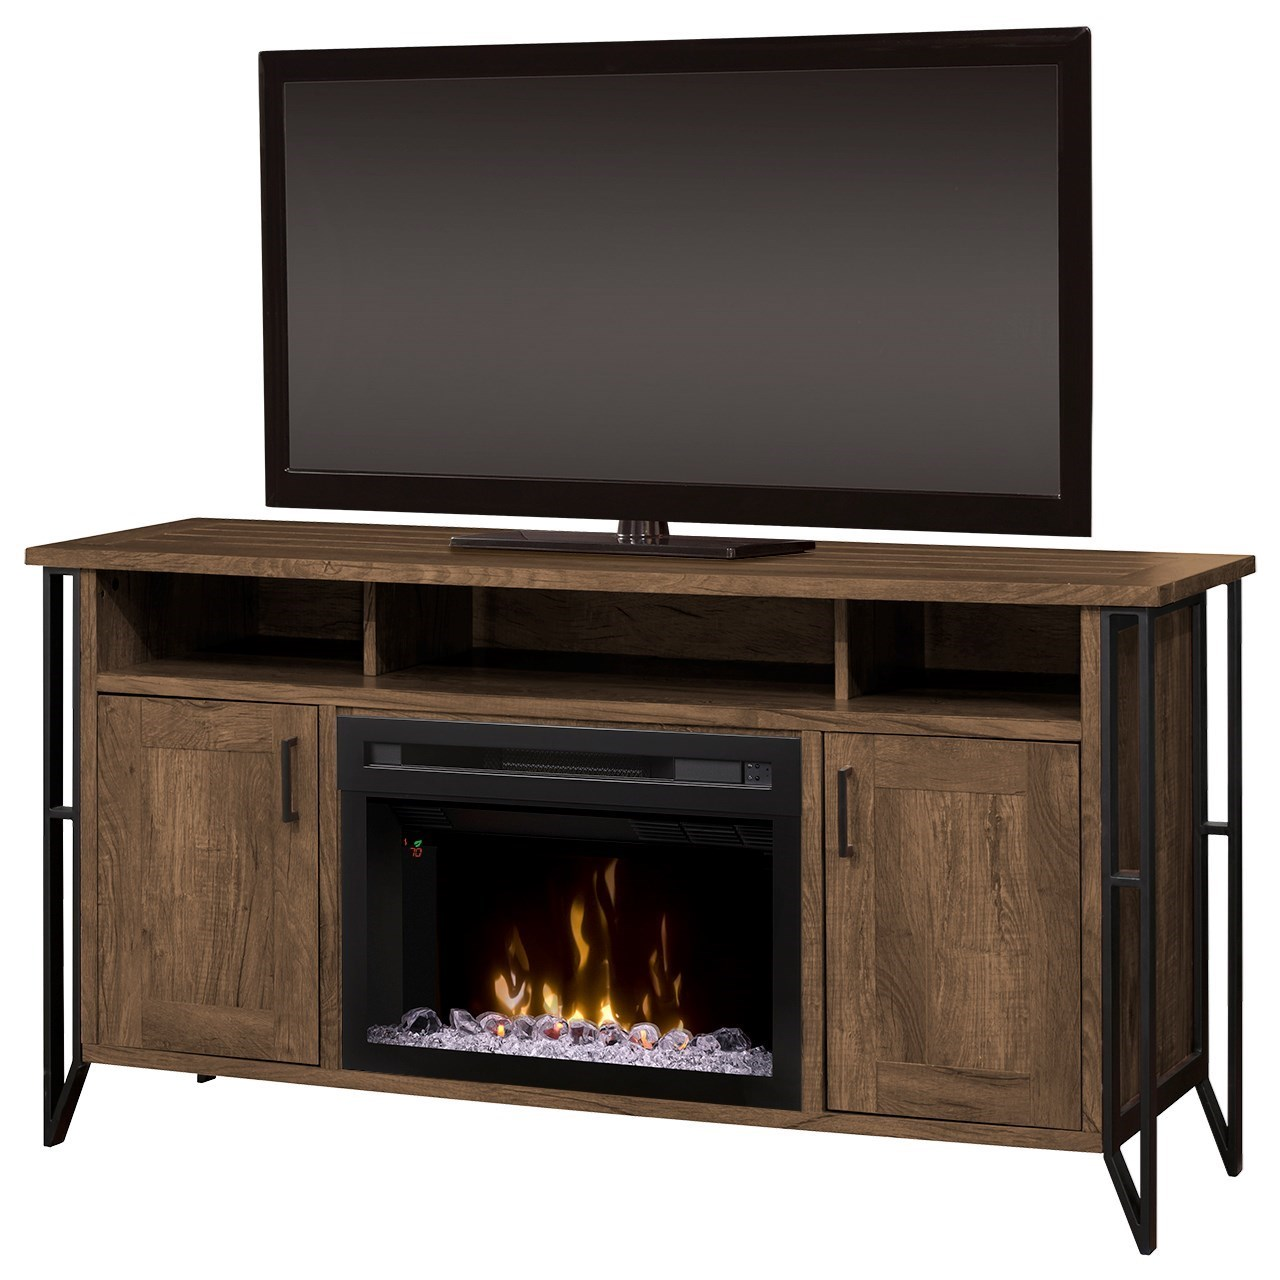 "Tyson 64"" Media Console Fireplace by Dimplex at Jordan's Home Furnishings"